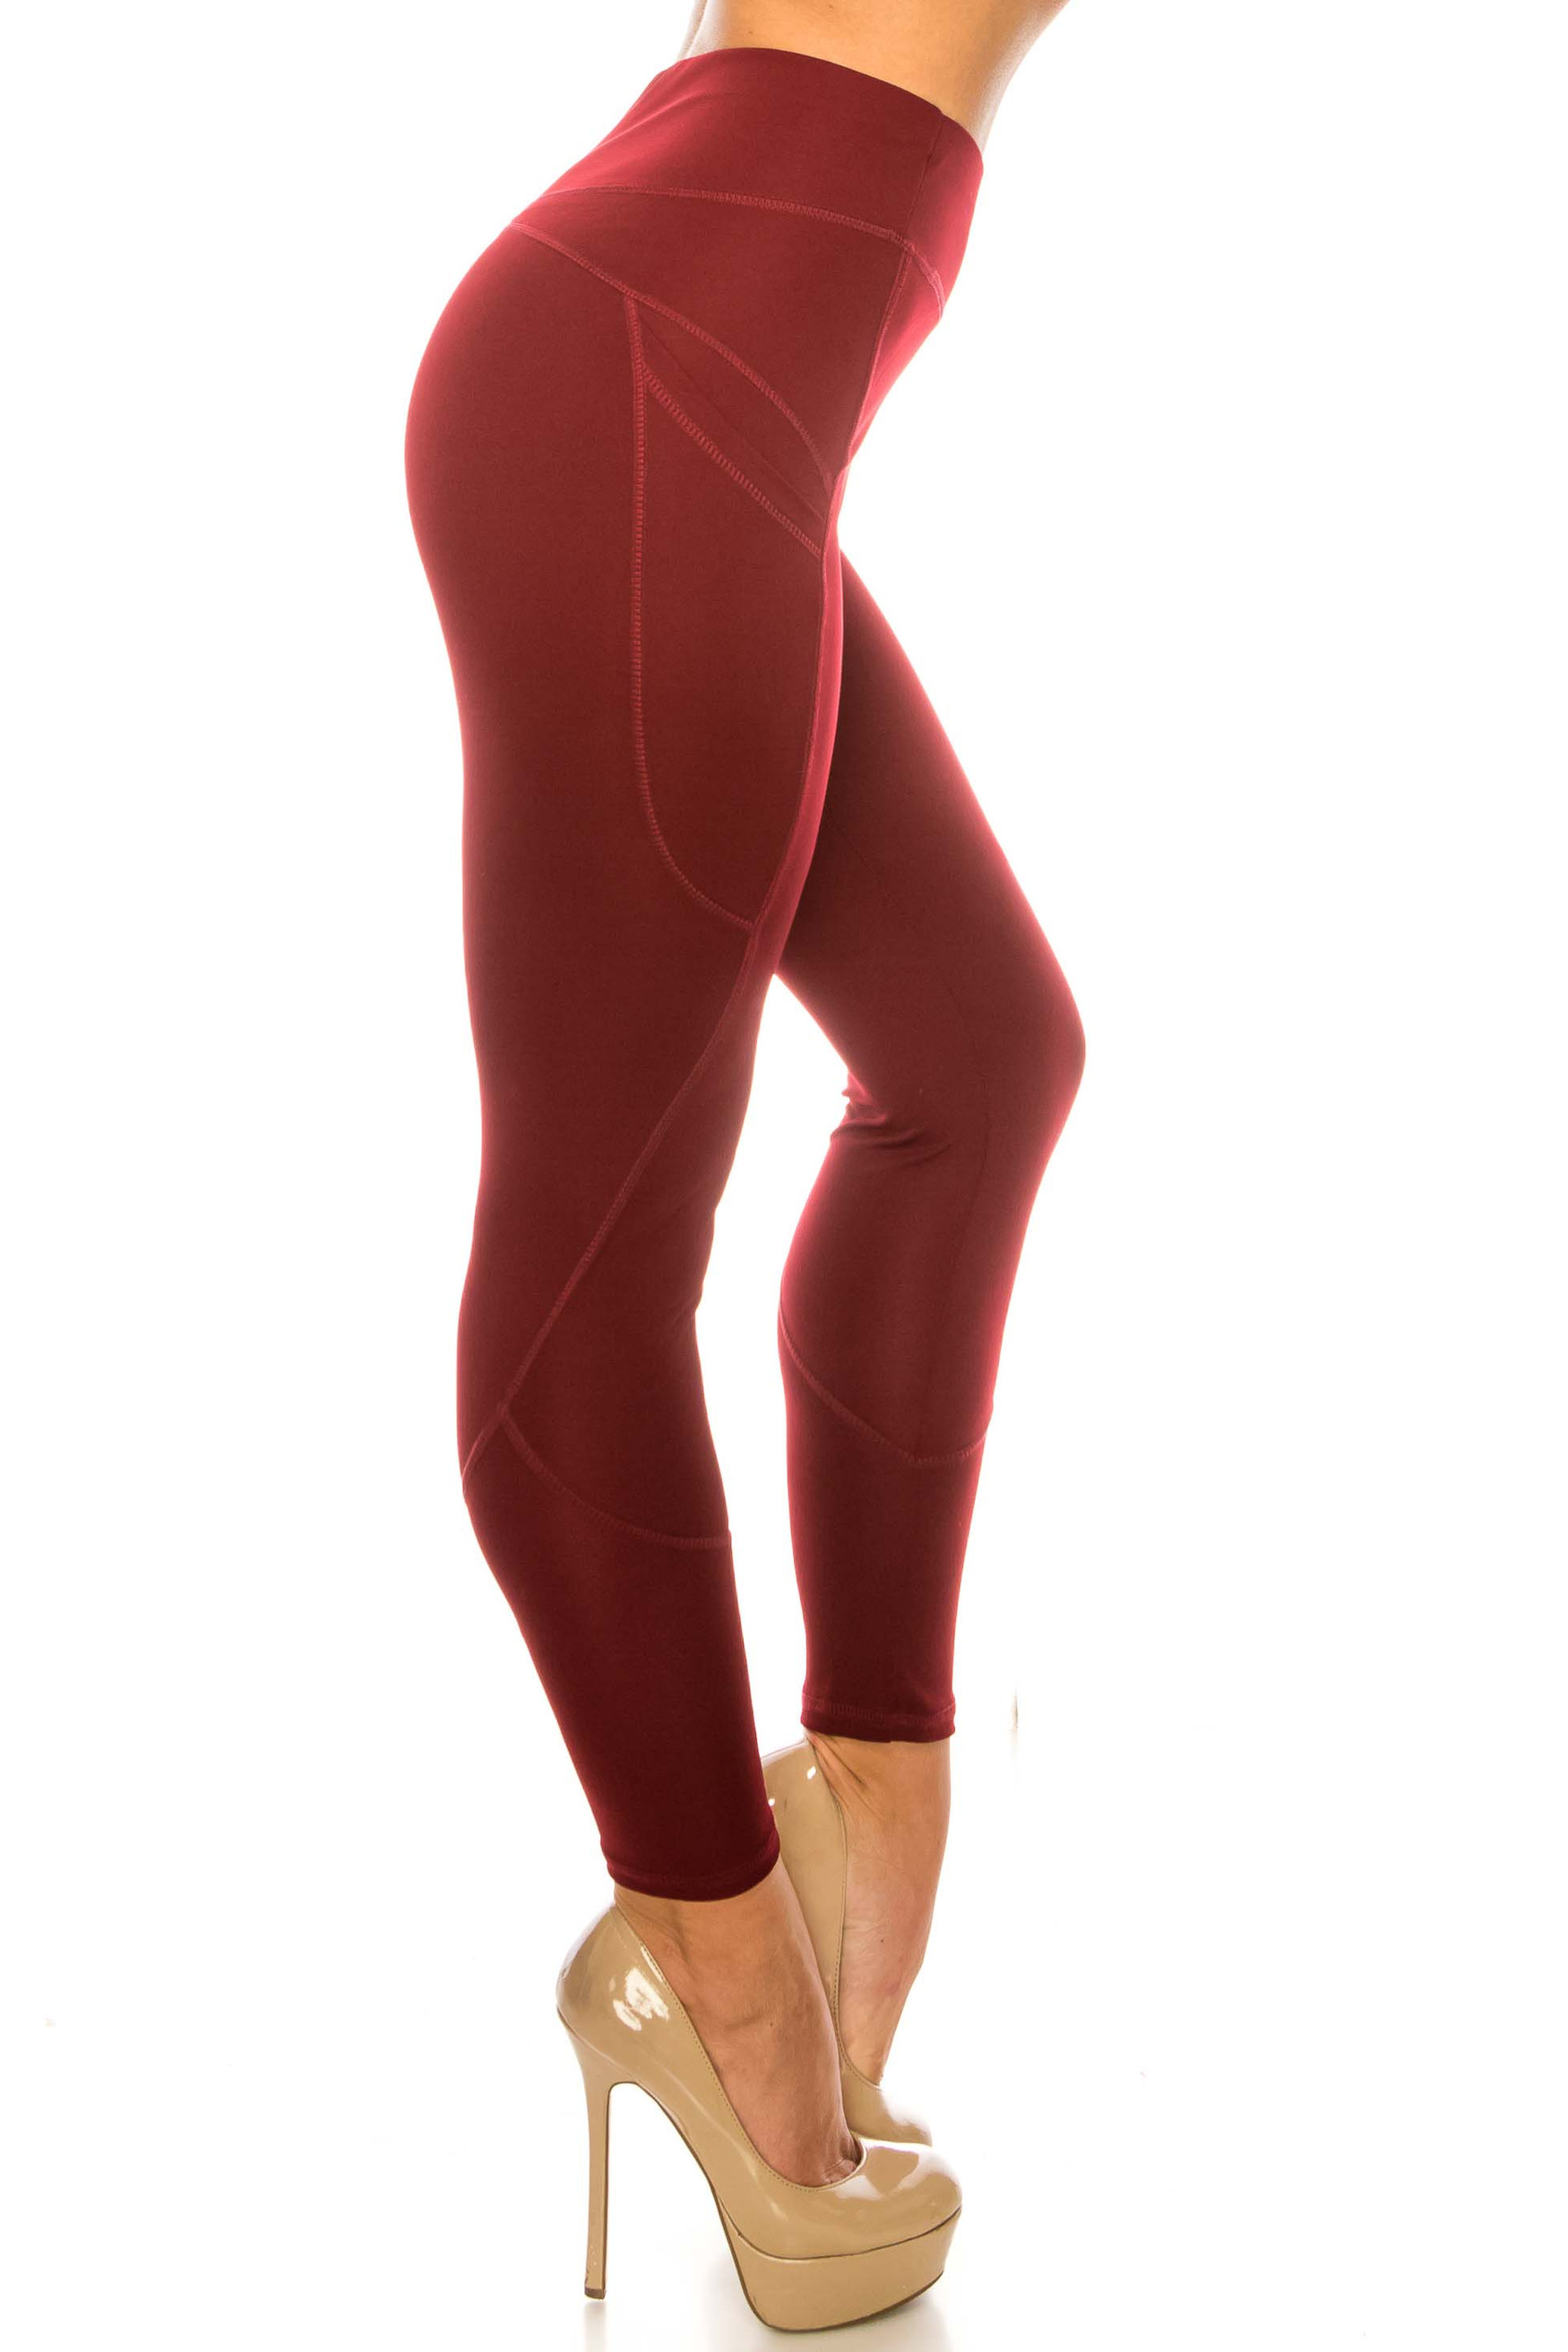 Solid Burgundy Contour Seam High Waisted Sport Leggings with Pockets